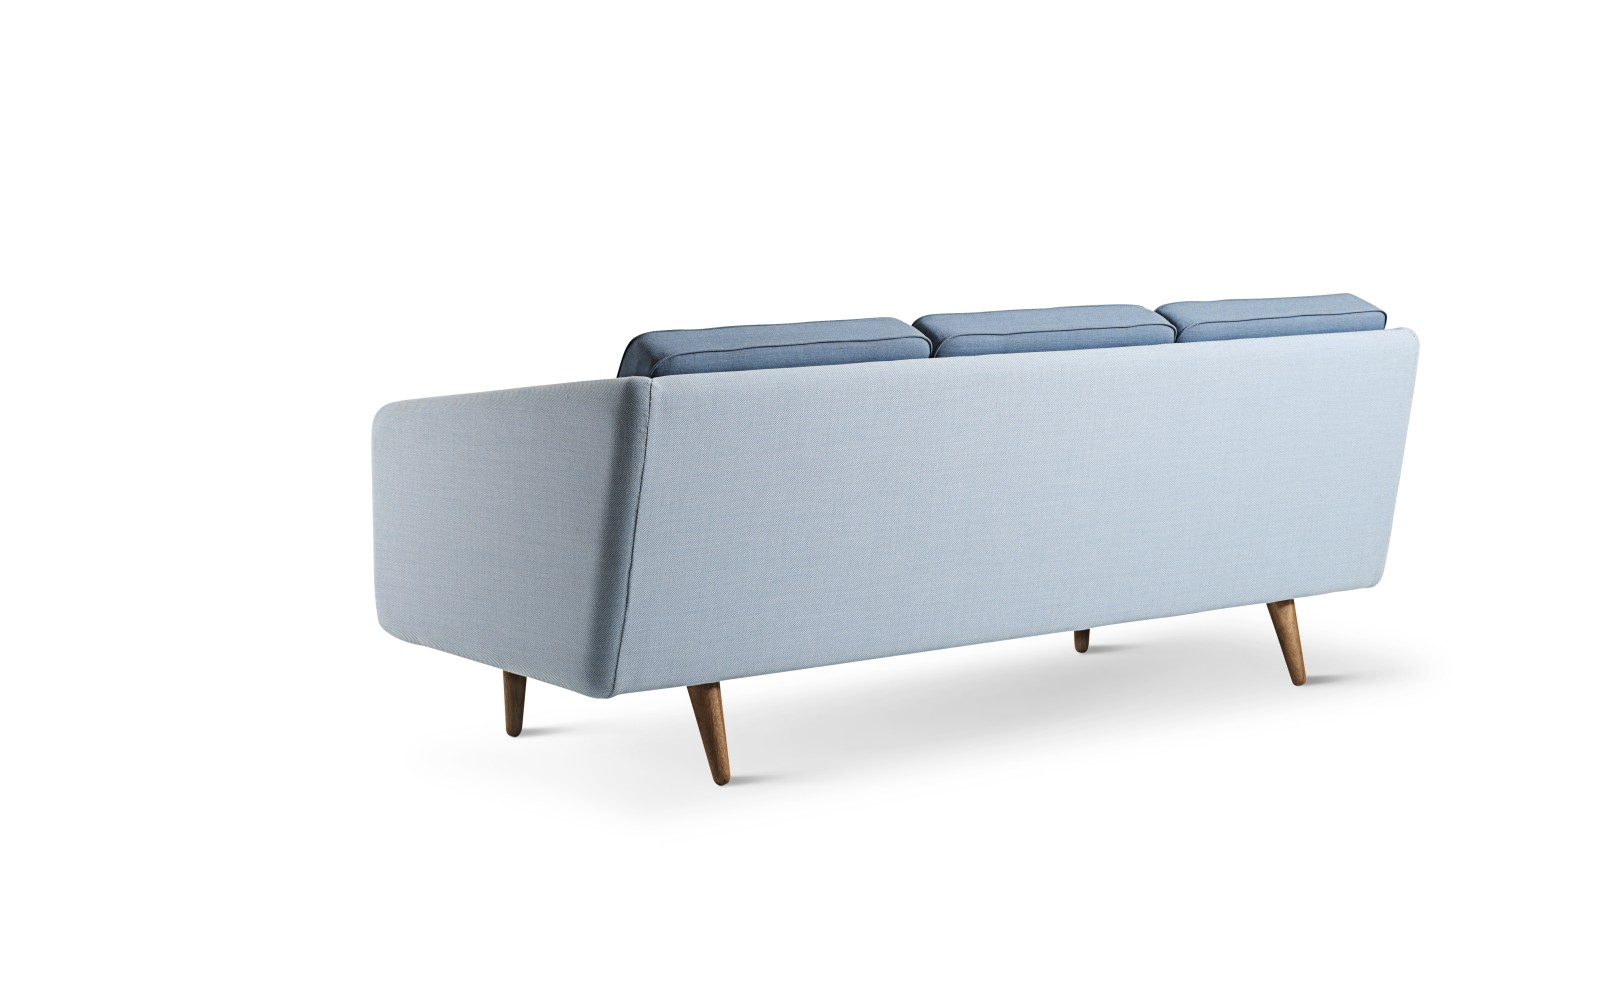 No. 1 3-seater Sofa Breeze Fusion 4602, Crisp 4604, oak lacquered base